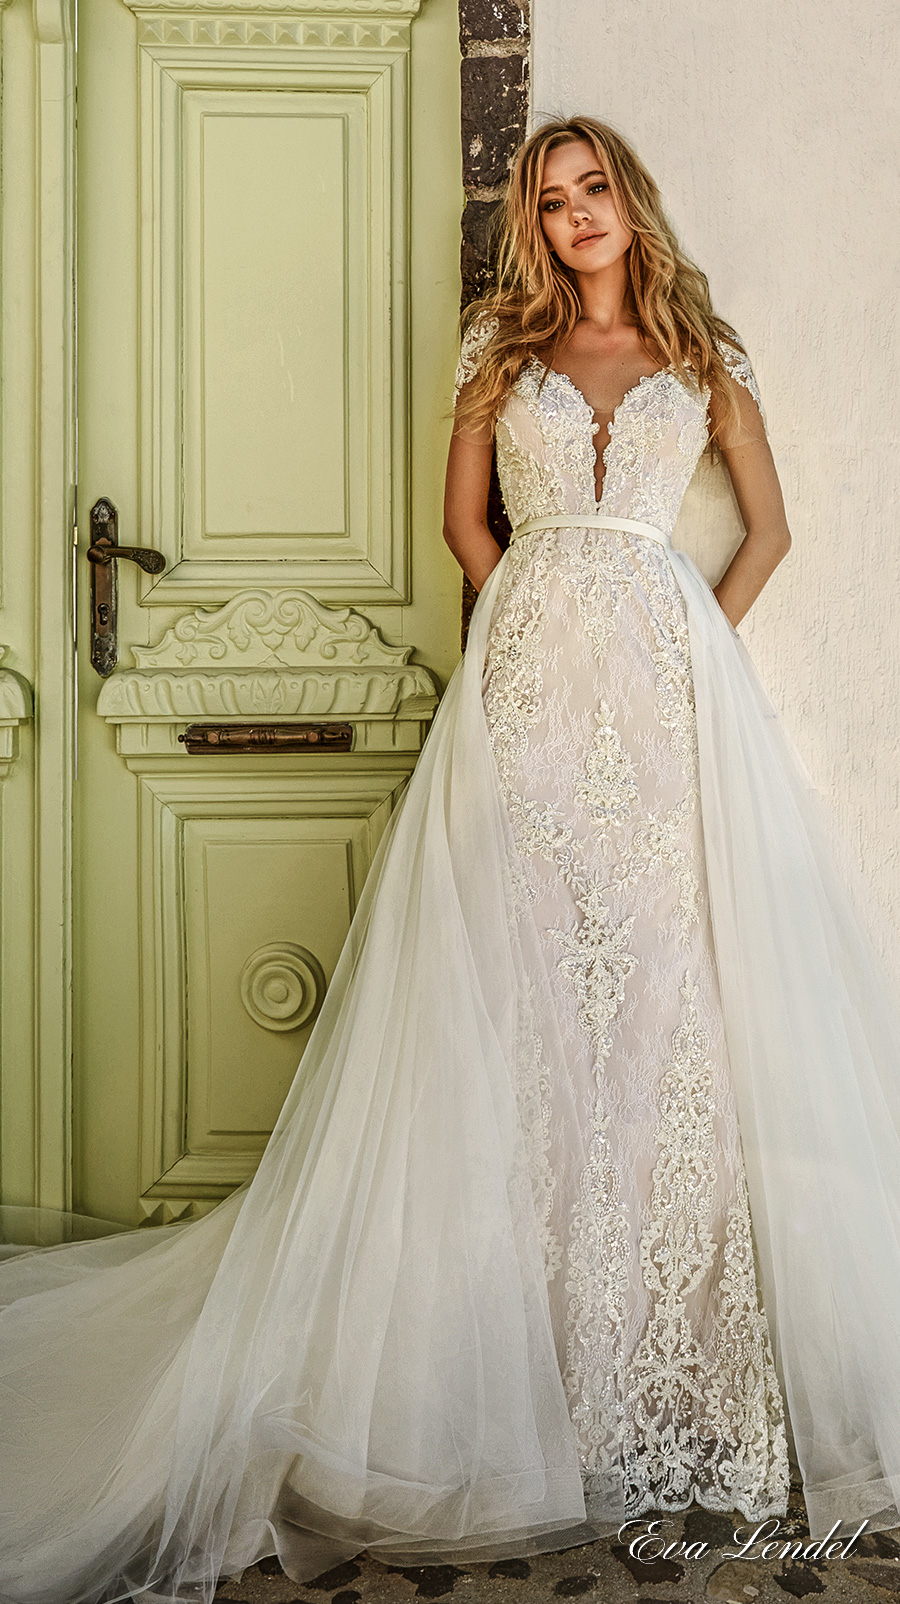 eva lendel 2017 bridal short sleeves deep plunging v neckline full embellishment elegant glamorous sheath wedding dress a line overskirt open v back chapel train (tina) mv